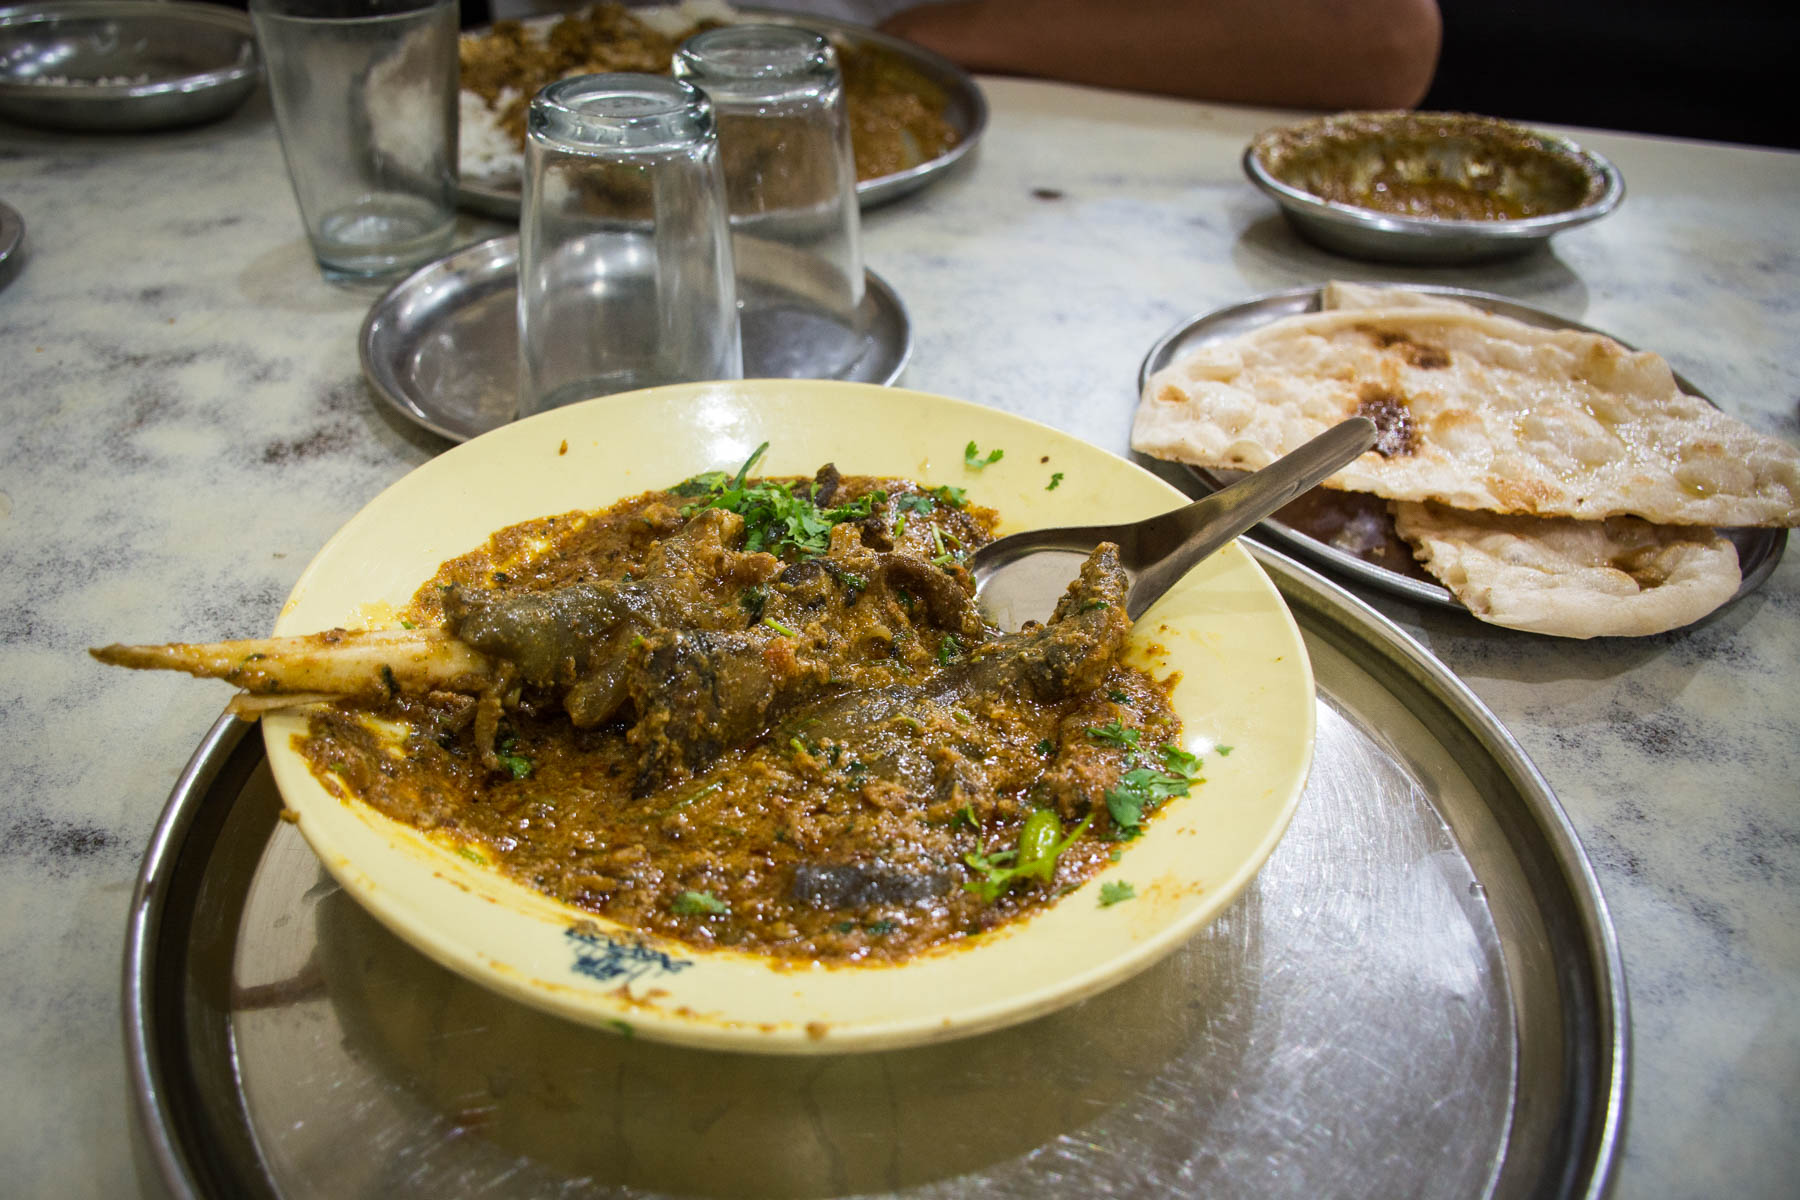 Where and what to eat in Hyderabad's Old City - Paya goat hoof in Hyderabad - Lost With Purpose